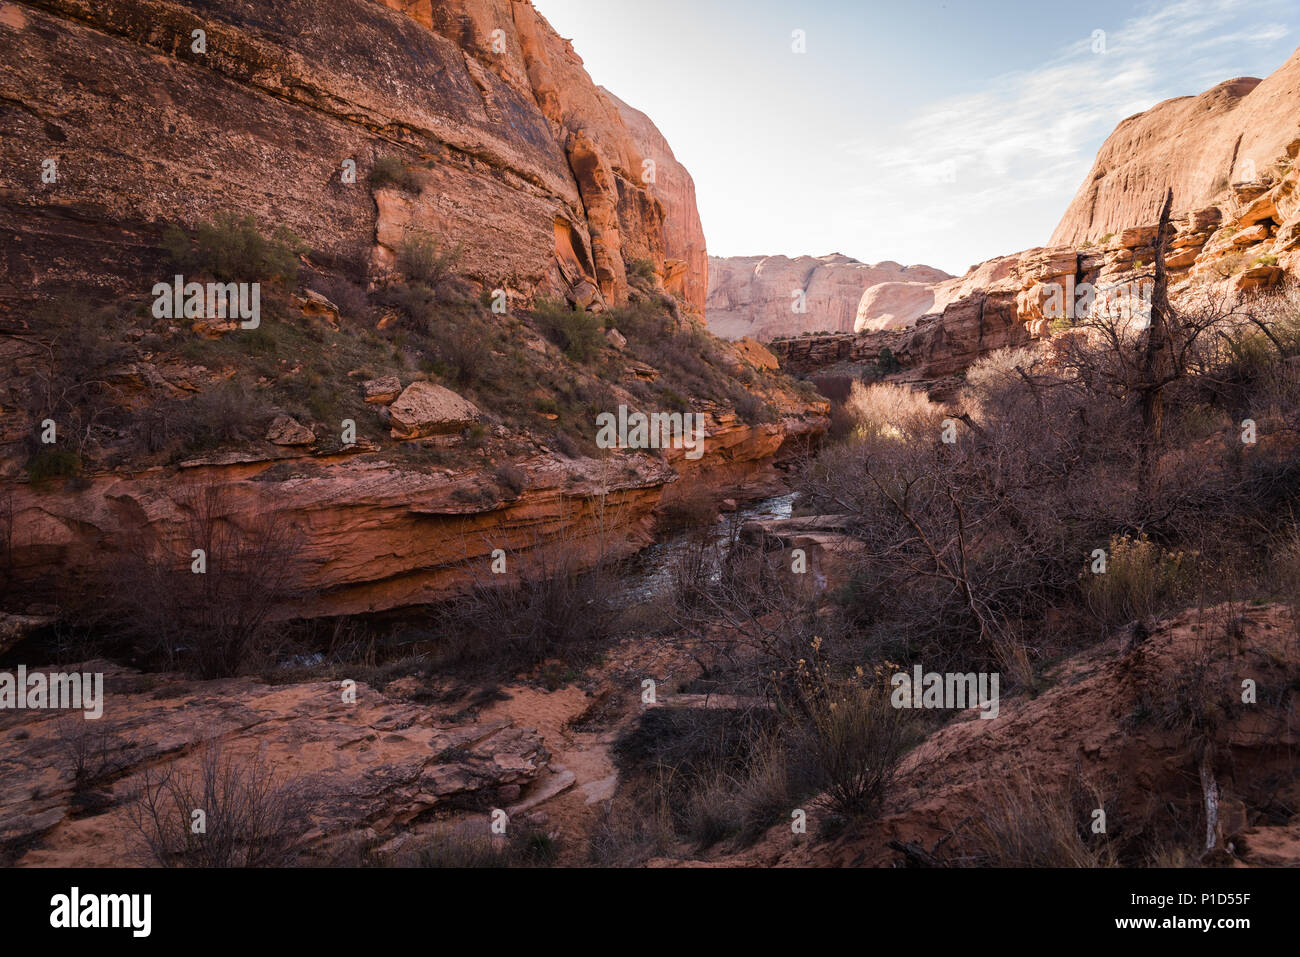 Landscape view in a valley on a trail in Moab, Utah. - Stock Image